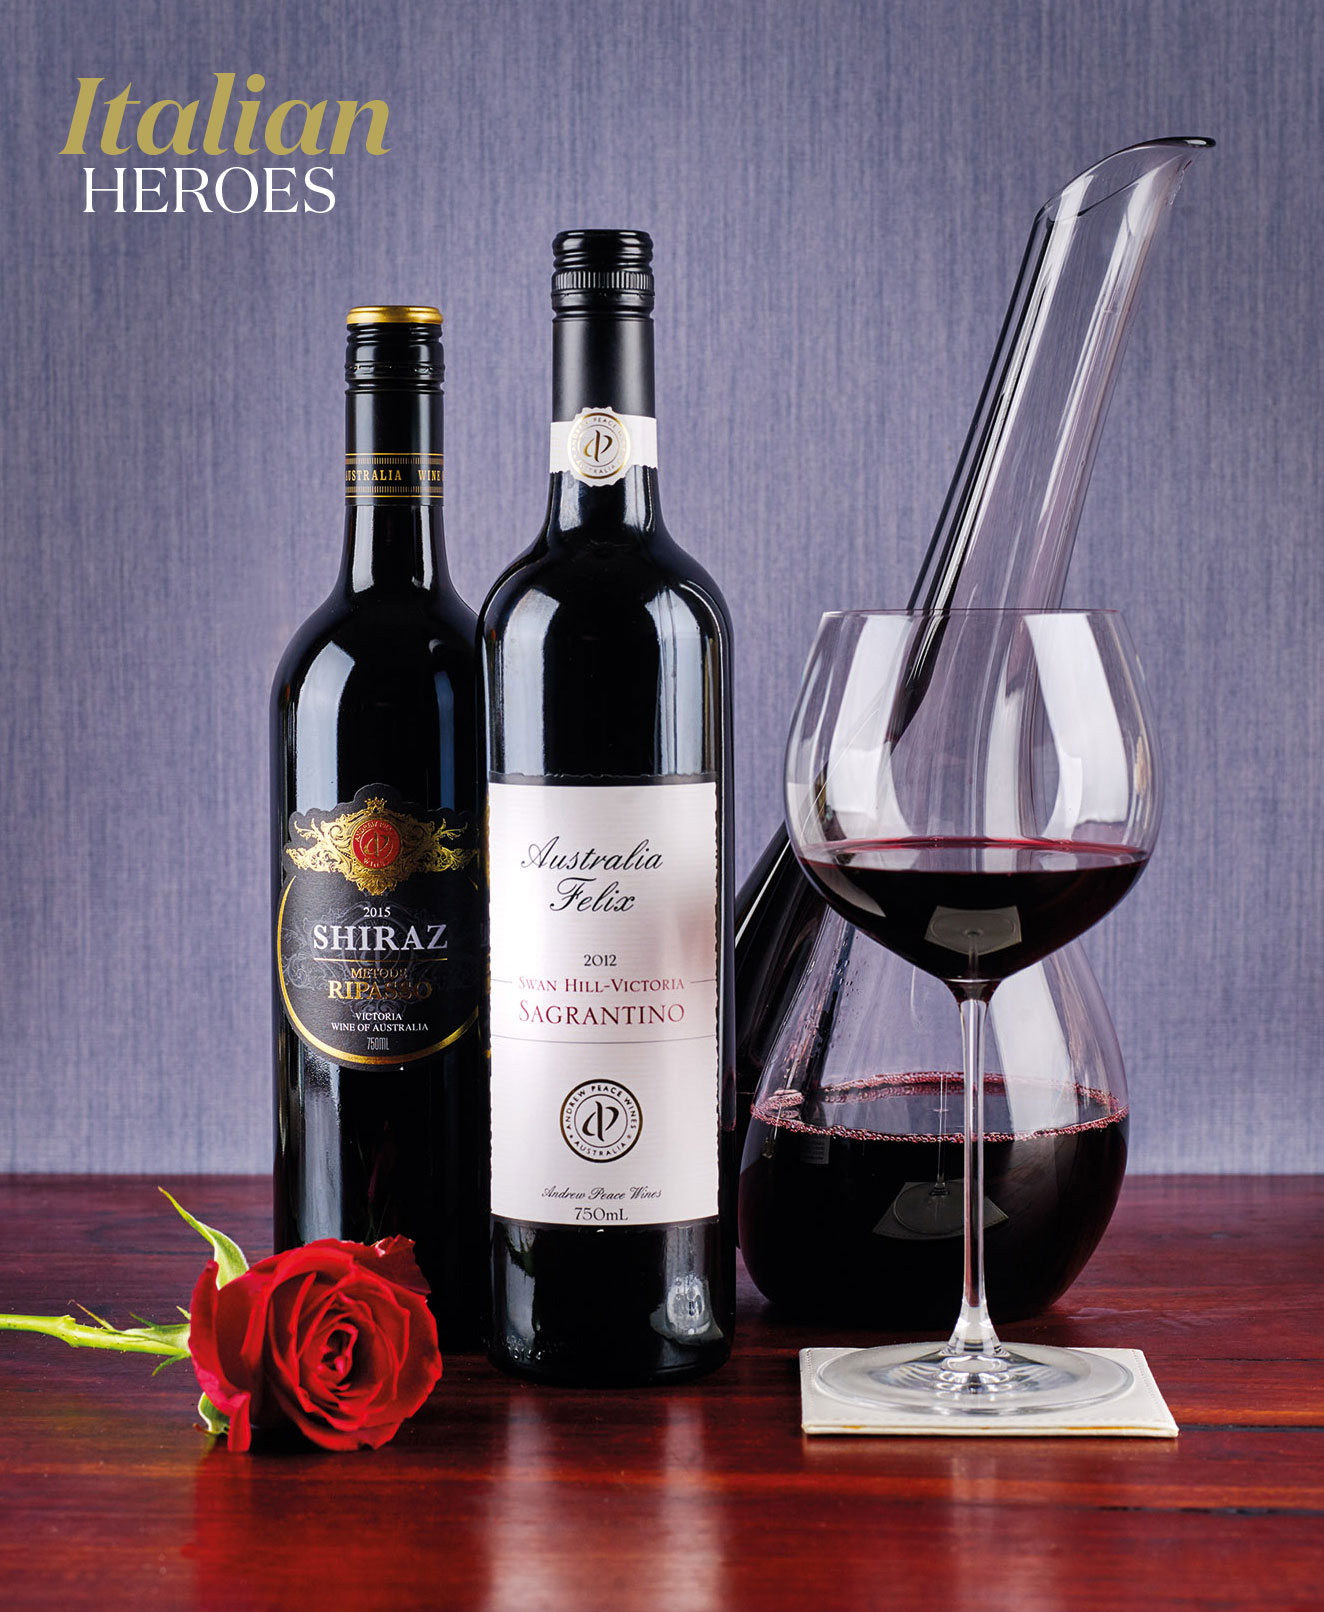 Italian Heroes – Andrew Peace Wines, Swan Hill